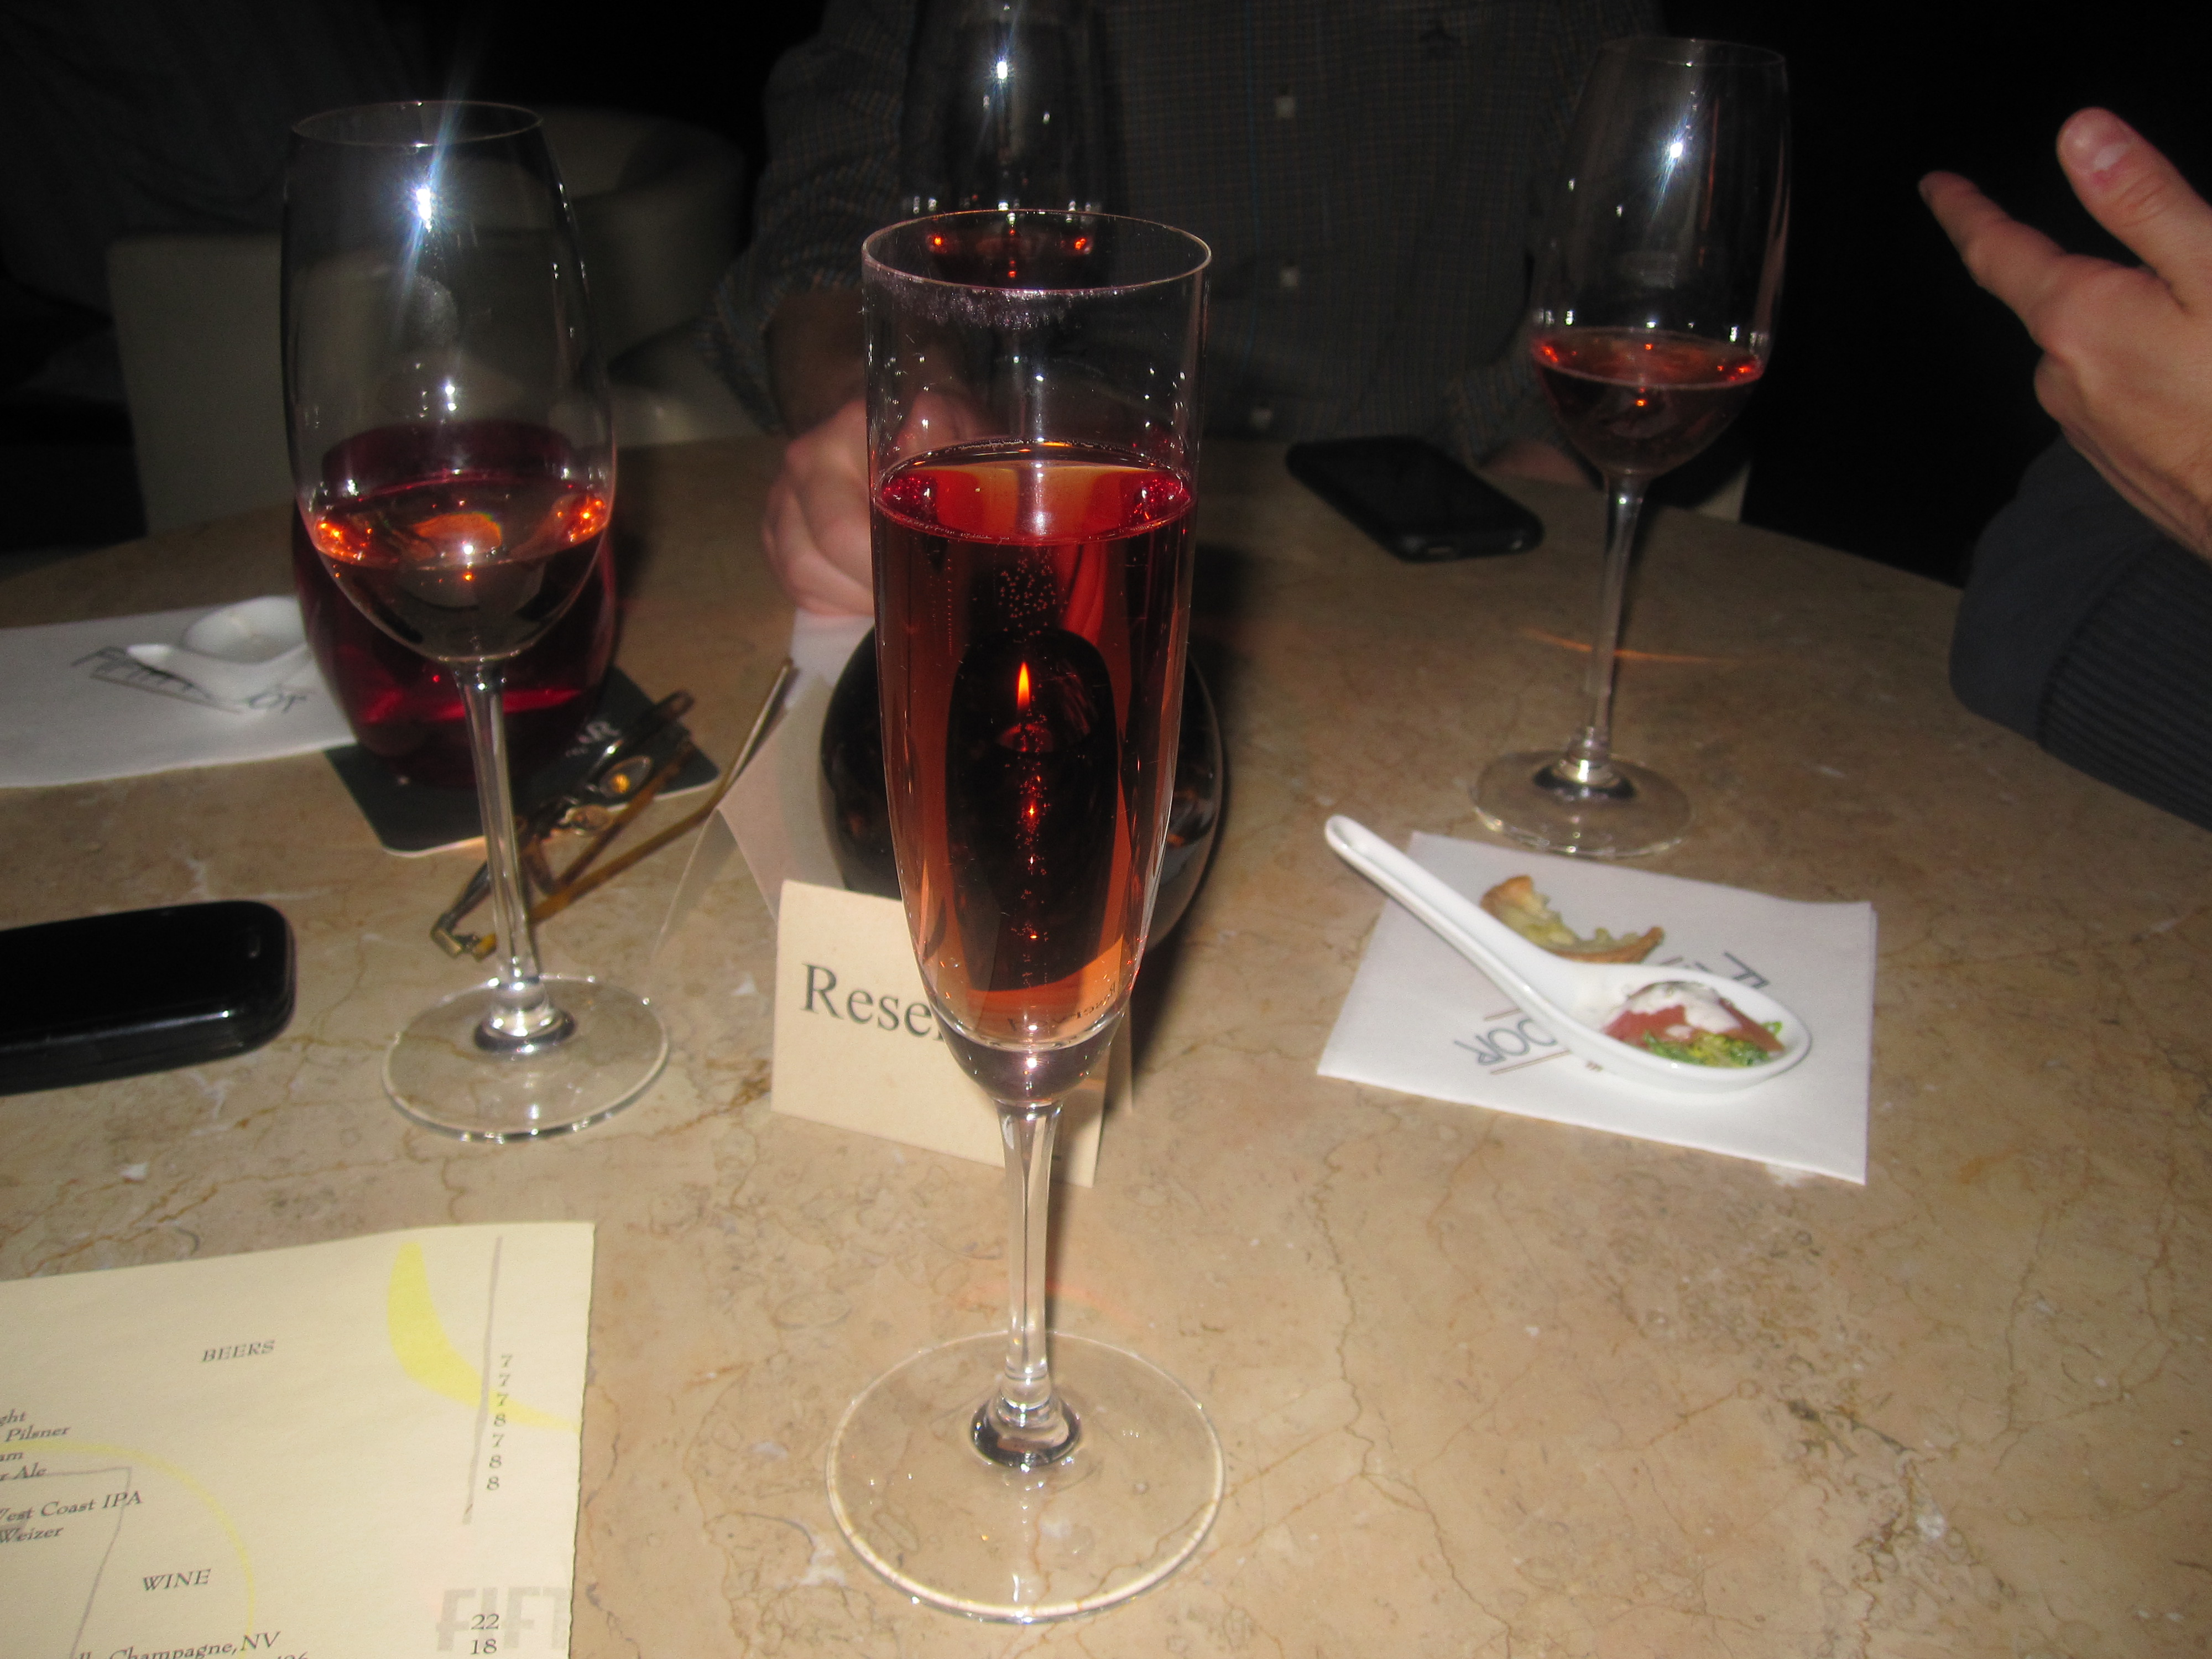 I was greeted with an excellent glass of sparkling rose.